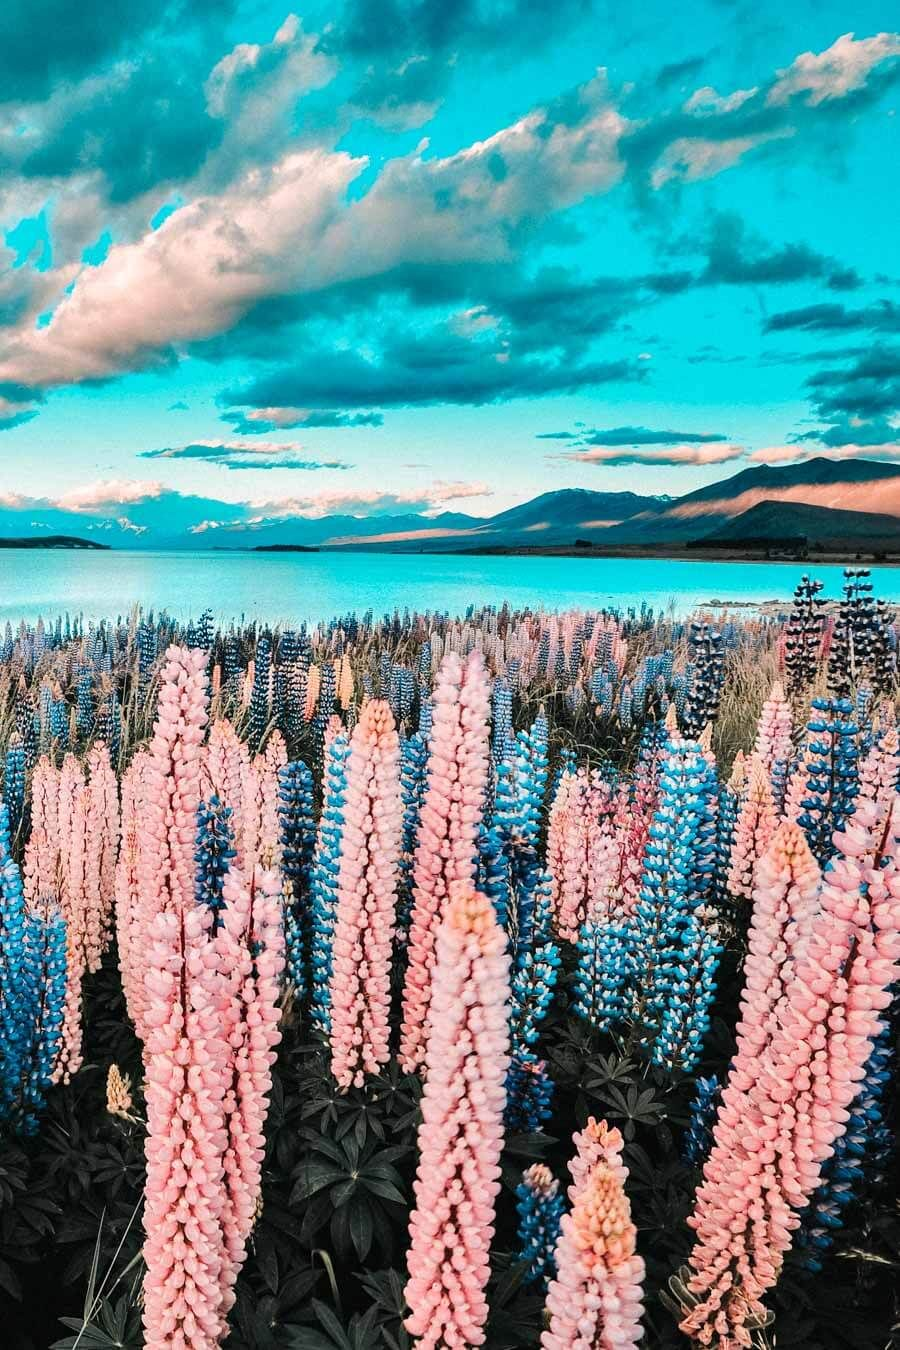 Lake Tekapo is one of the top beauties of New Zealand and definitely one of the top places to see in New Zealand before you die. Check out more of the best places to see in New Zealand on Avenlylanetravel.com #AVENYLANETRAVEL #AVENLYLANE #newzealand #travelinspiration #beautifulplaces #beautifuldestinations #traveldestinations #islands #traveltheworld #beautifulplaces